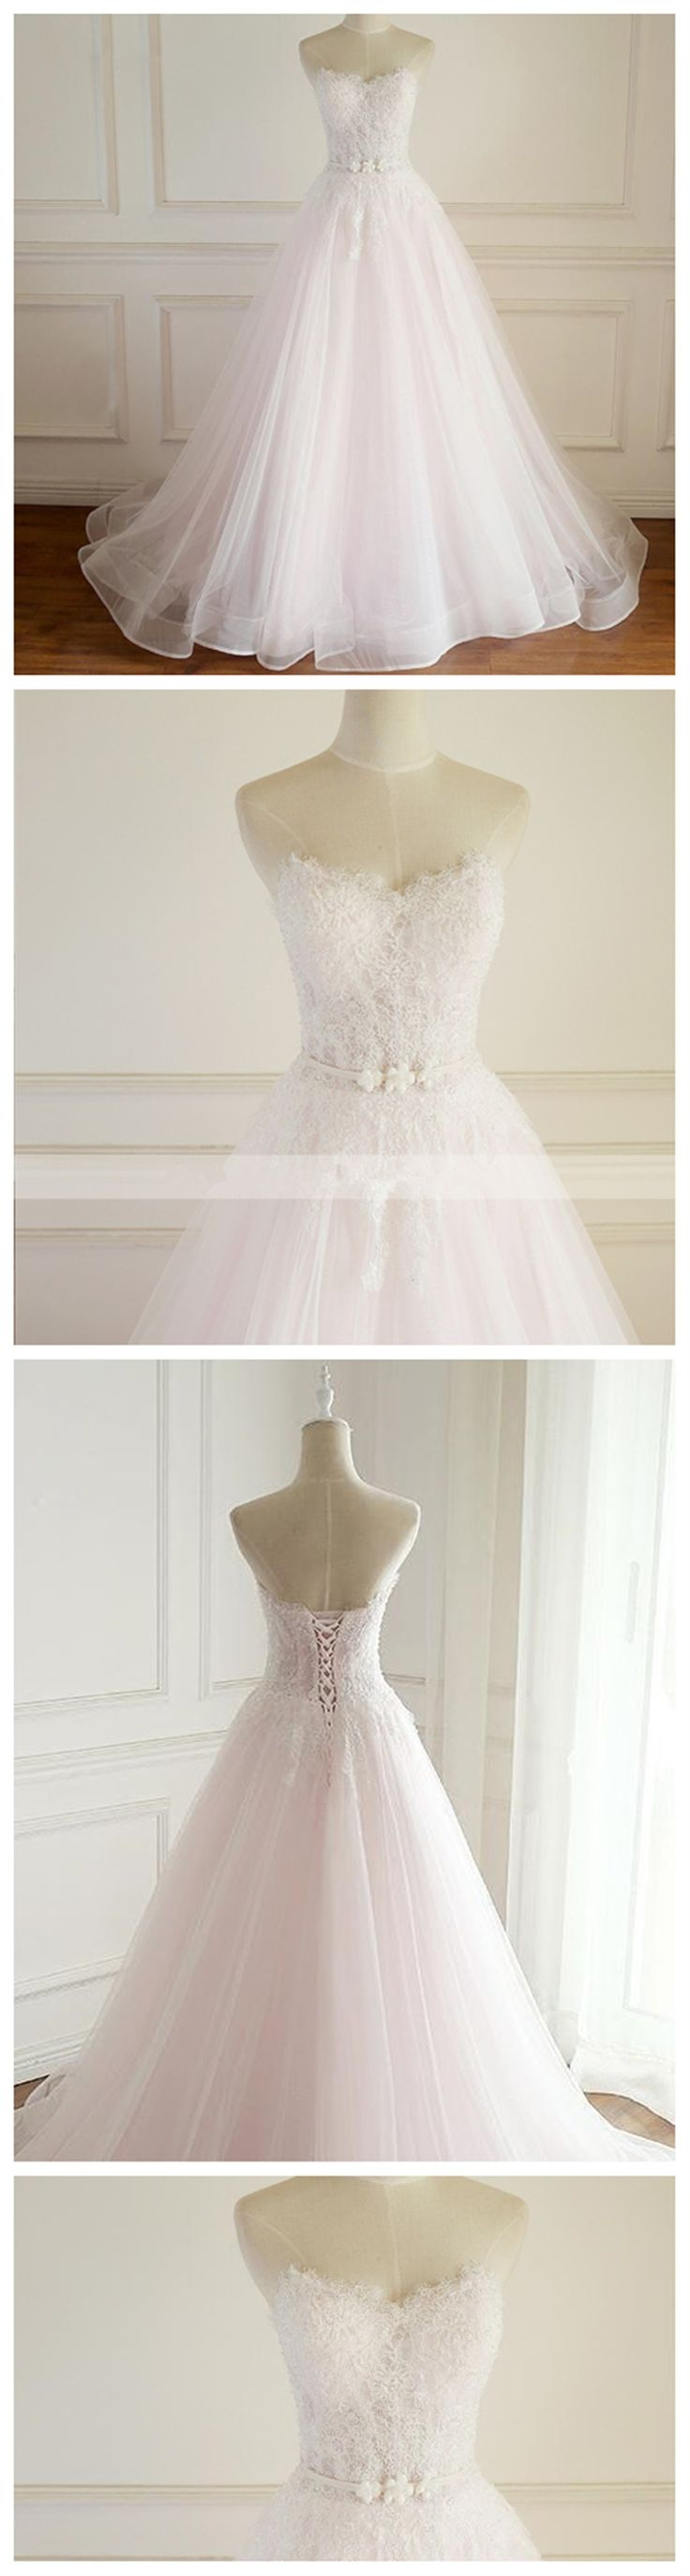 Simple Strapless Pale Pink Lace A line Wedding Bridal Dresses, Custom Made Wedding Dresses, Affordable Wedding Bridal Gowns, WD262